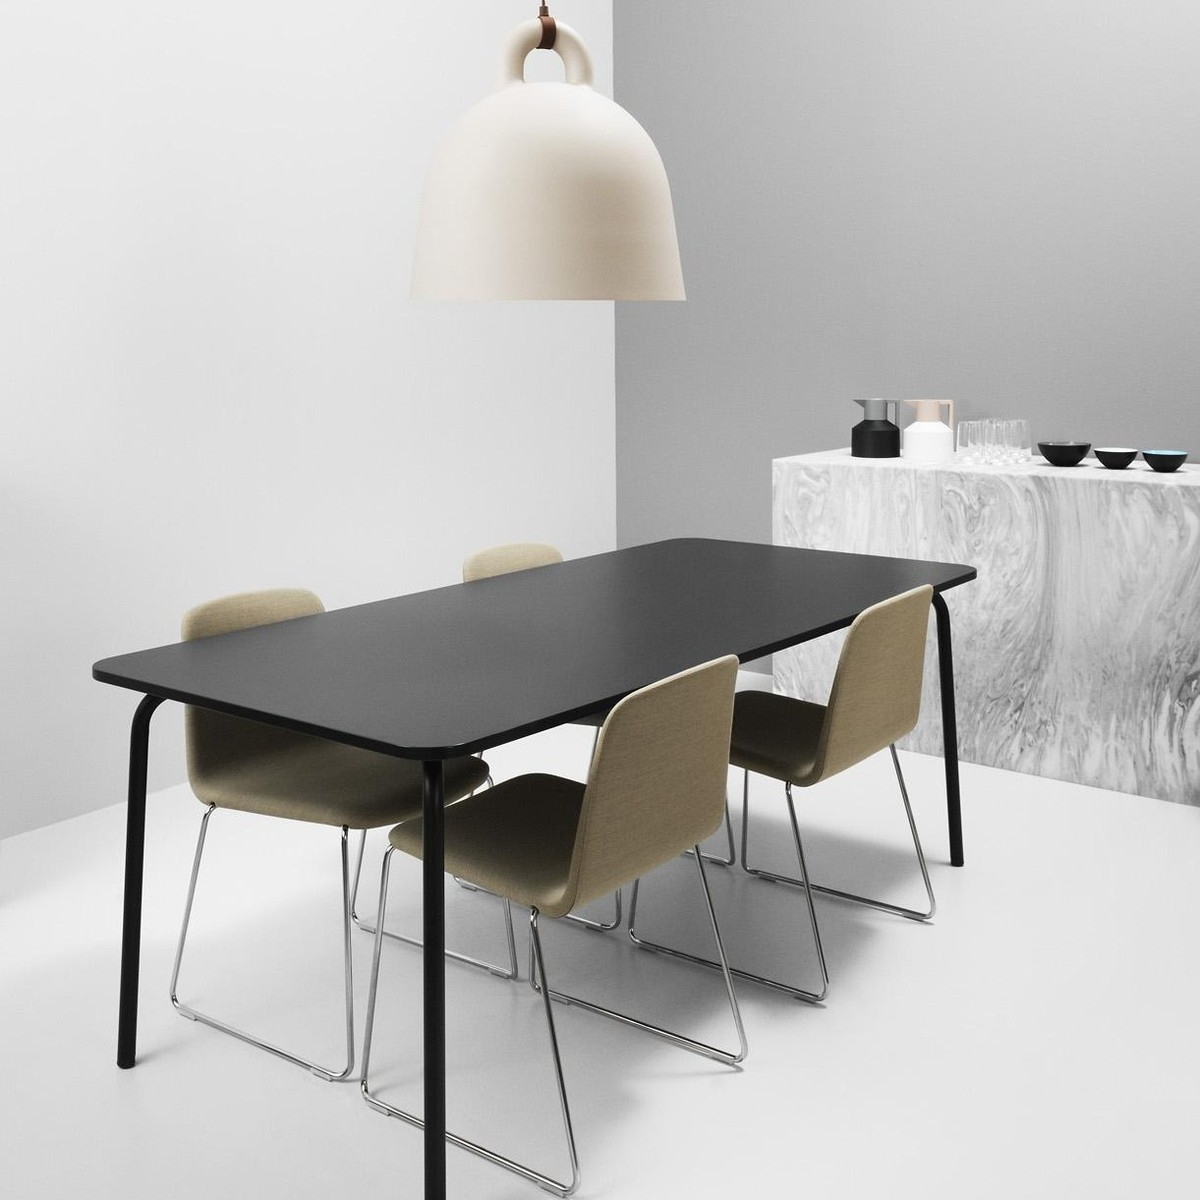 just chair chaise normann copenhagen. Black Bedroom Furniture Sets. Home Design Ideas